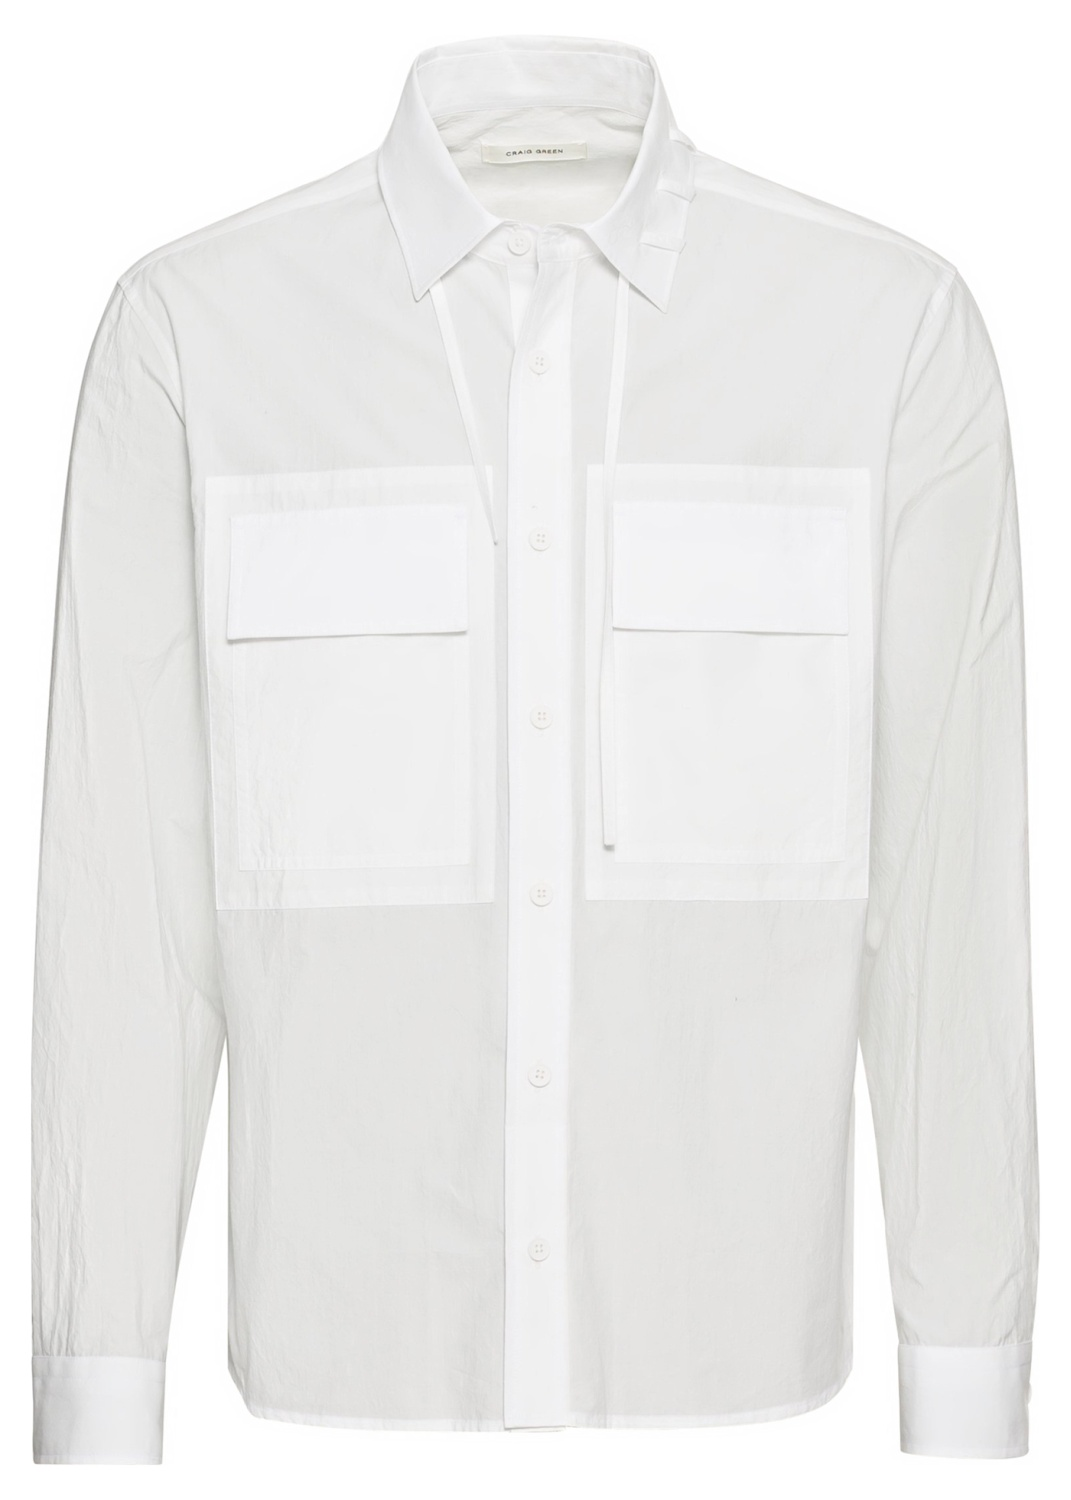 Laced Shirt image number 0